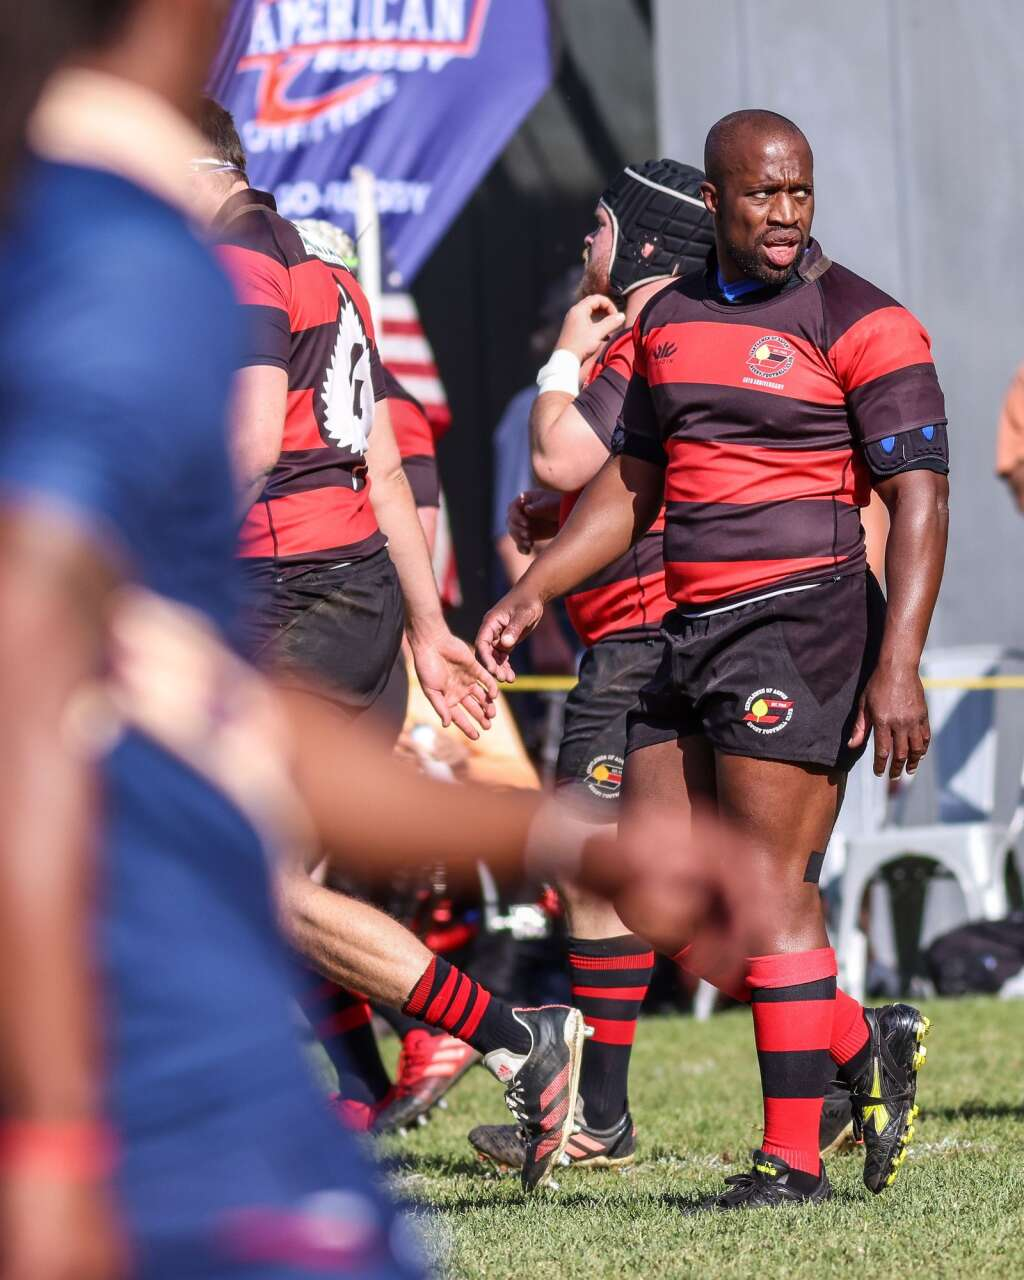 The Gentlemen of Aspen Rugby Club's Simon Dogbe looks at the play during their match against the American Raptors in the final of Ruggerfest 53 on Sunday, Sept. 26, 2021, on Wagner Park in downtown Aspen. Photo by Austin Colbert/The Aspen Times.